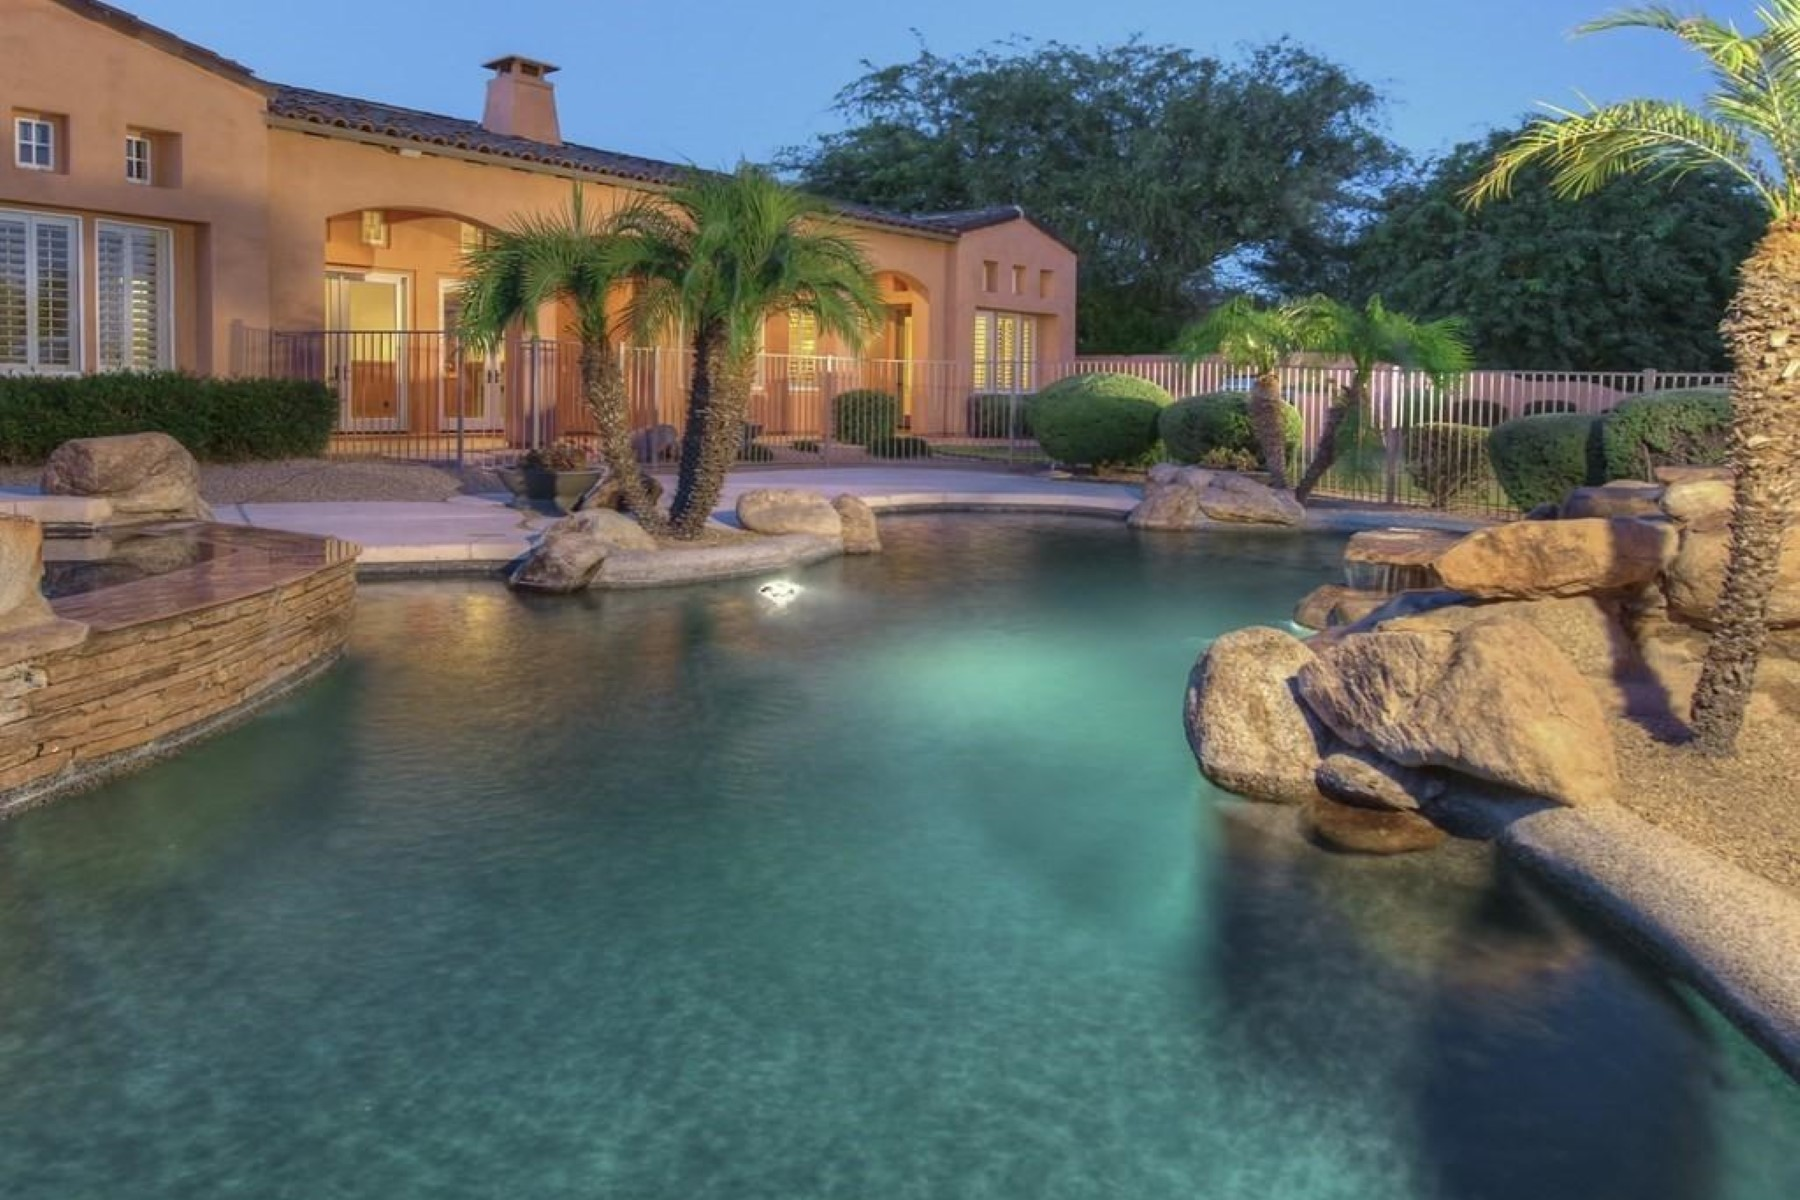 Single Family Home for Sale at Lovely Custom Home In the Heart of DC Ranch 9255 E Mountain Spring Rd, Scottsdale, Arizona, 85255 United States